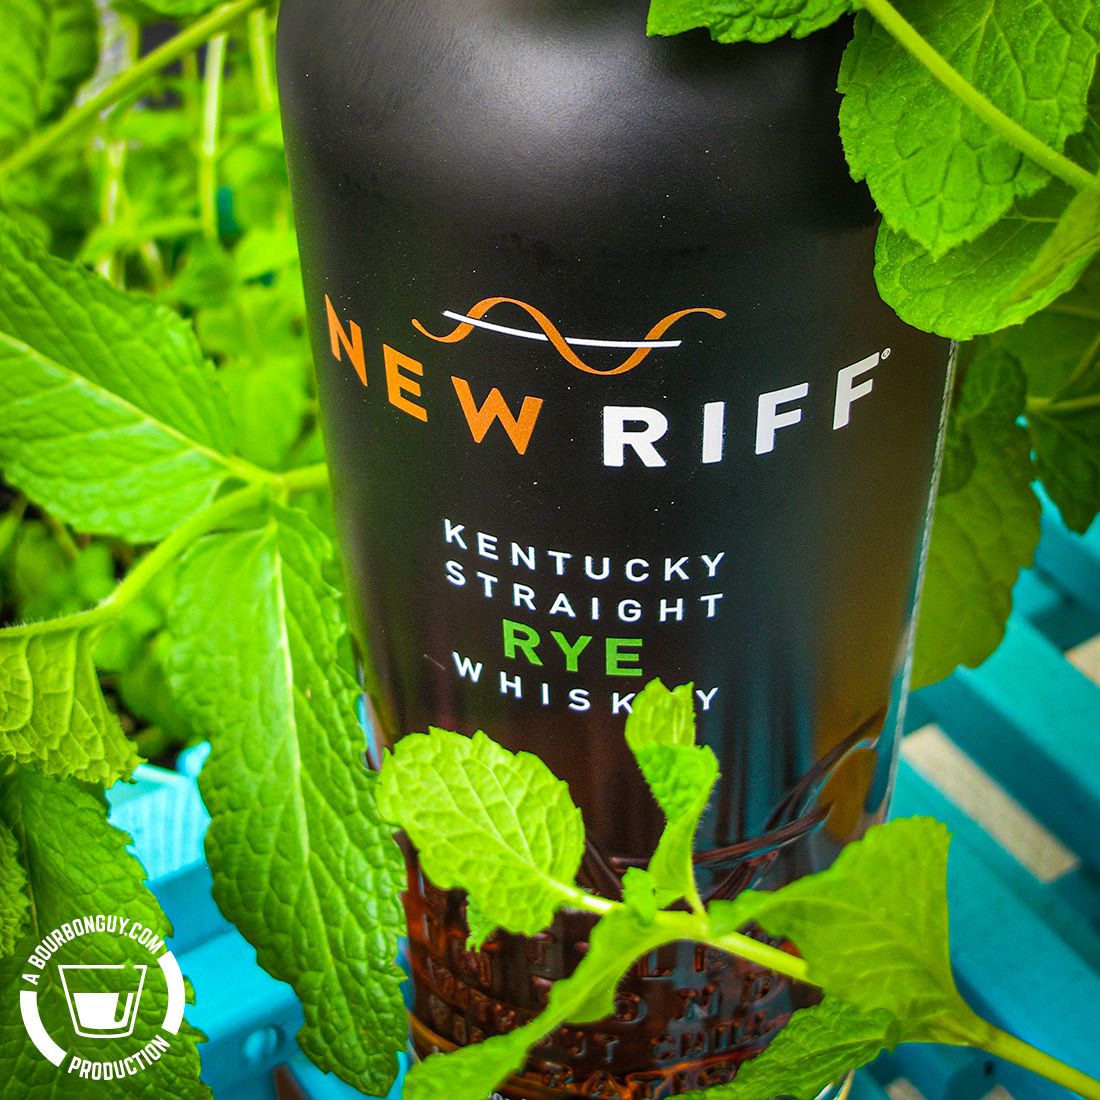 IMAGE: A bottle of New Riff Rye hiding in the mint plants